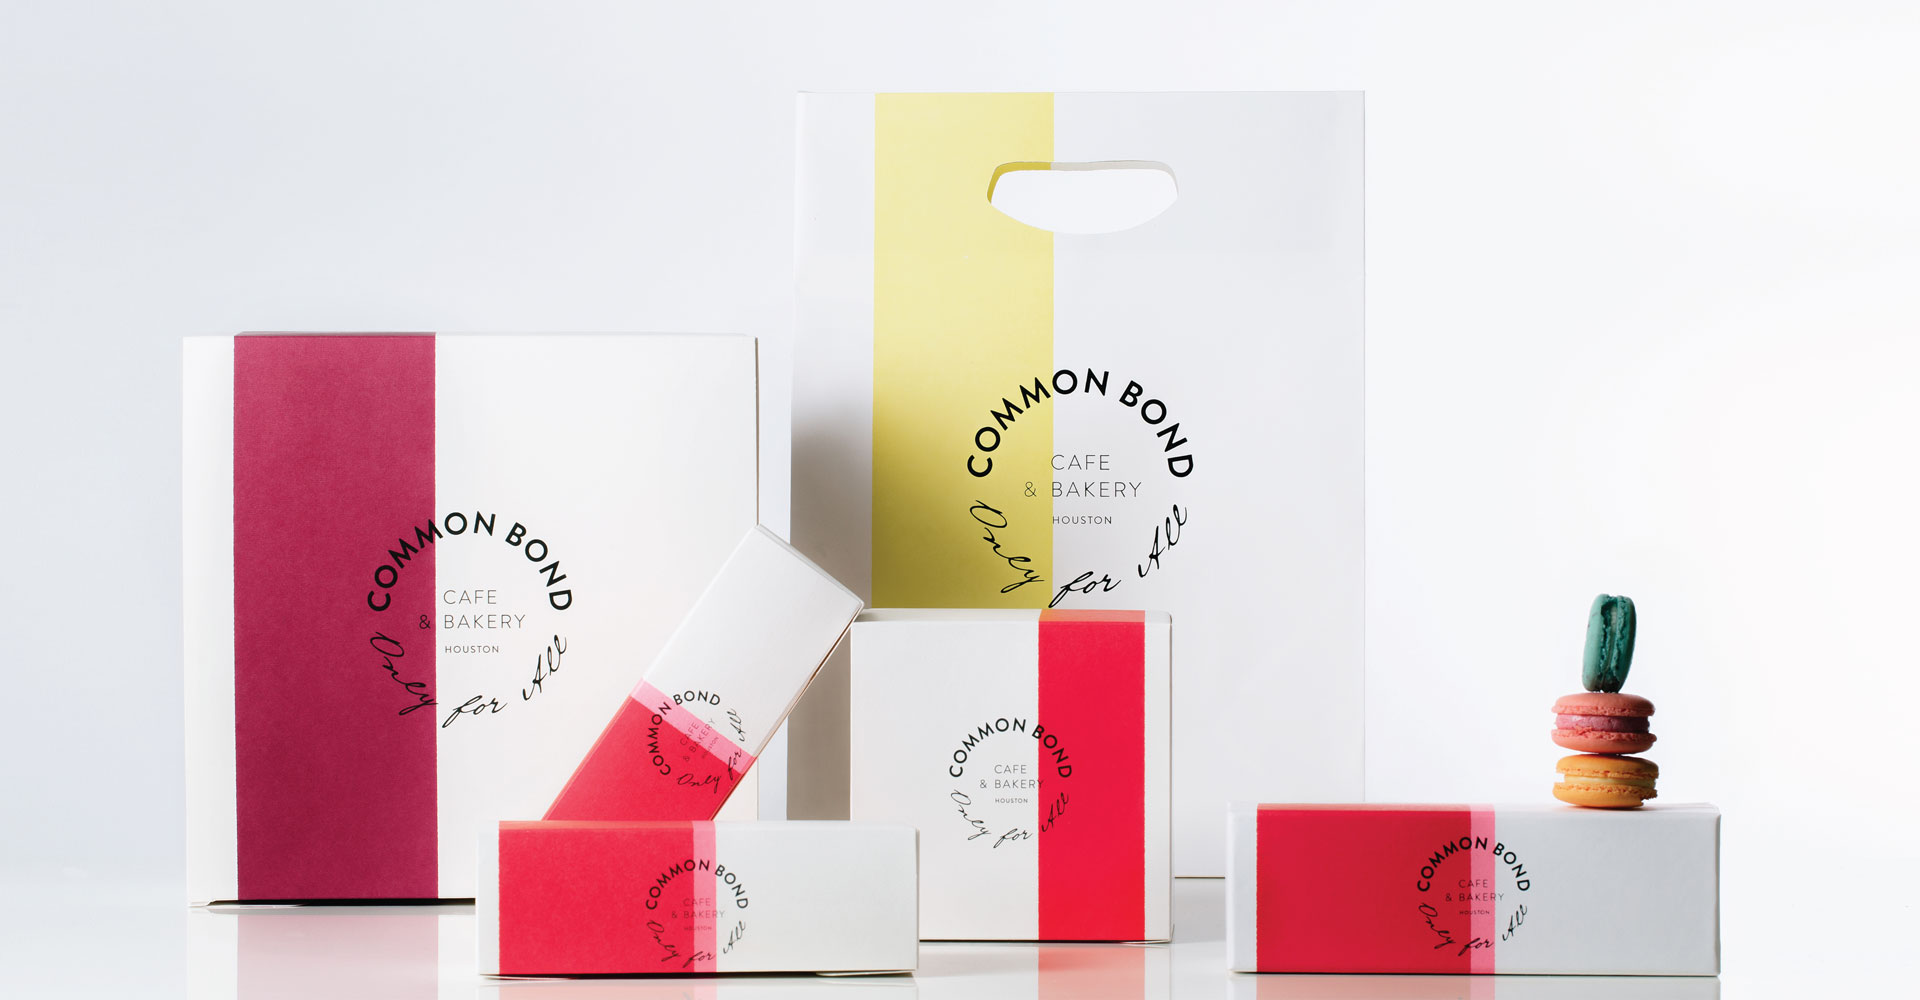 Creative_Retail_Packaging_Package_Design_Common_Bond_03.jpg